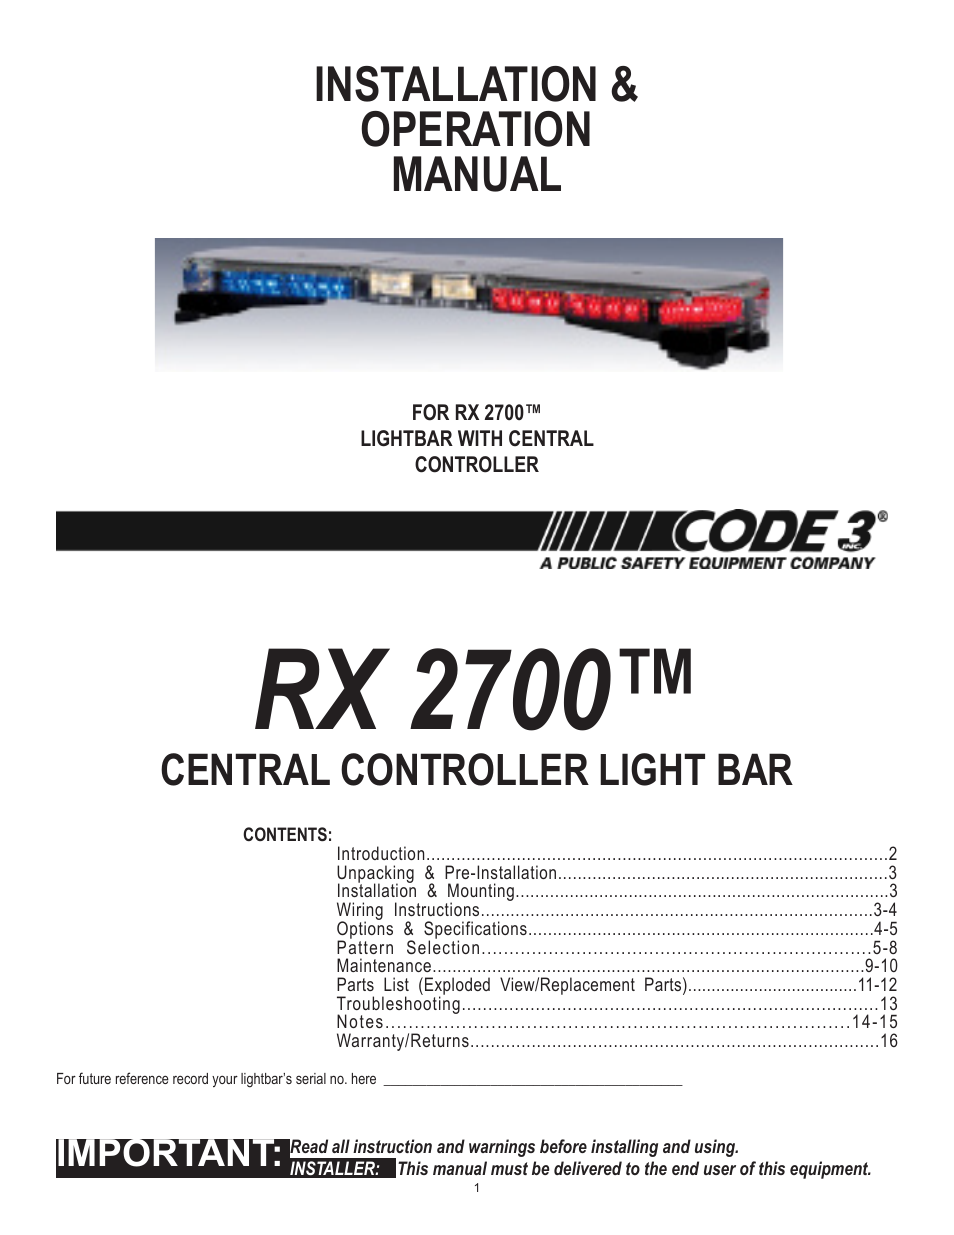 Code 3 Light Bar Wiring Diagram Detailed Schematics Switch Rx 2700cc User Manual 16 Pages 1982 S10 Tail